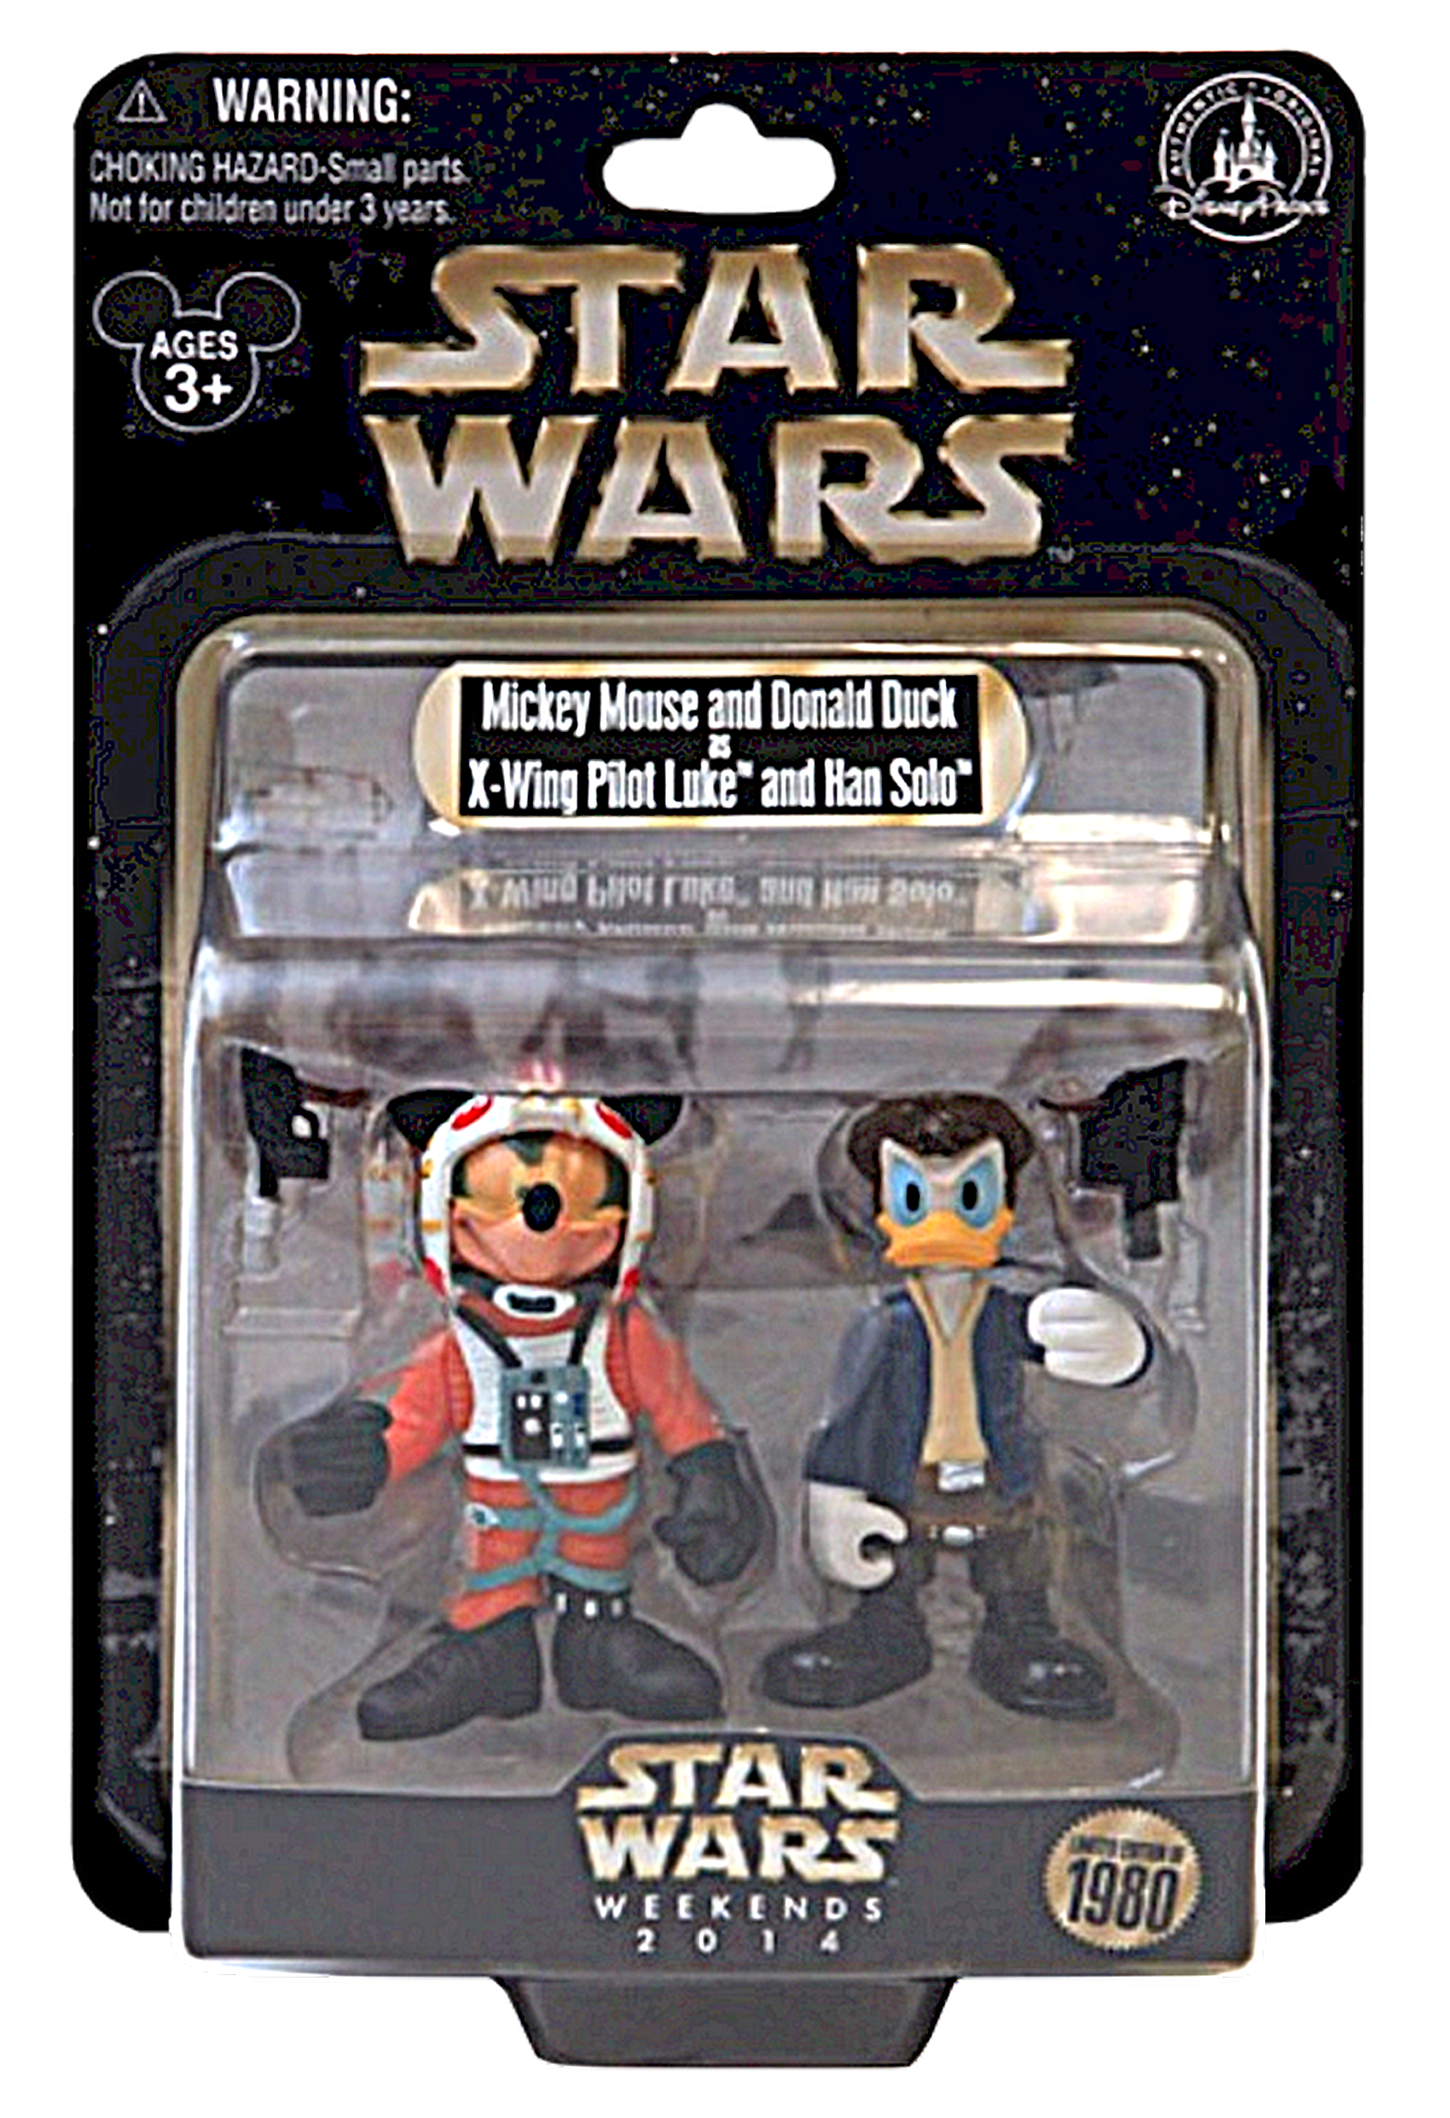 Star Wars X-Wing Pilot Mickey Mouse as Luke Skywalker and Donald Duck as Han Solo Star Tours Action Figure Set Individually Numbered ~ Disney Star Wars Weekends 2014 ~ Limited Edition 1980 ~ © Dizdude.com